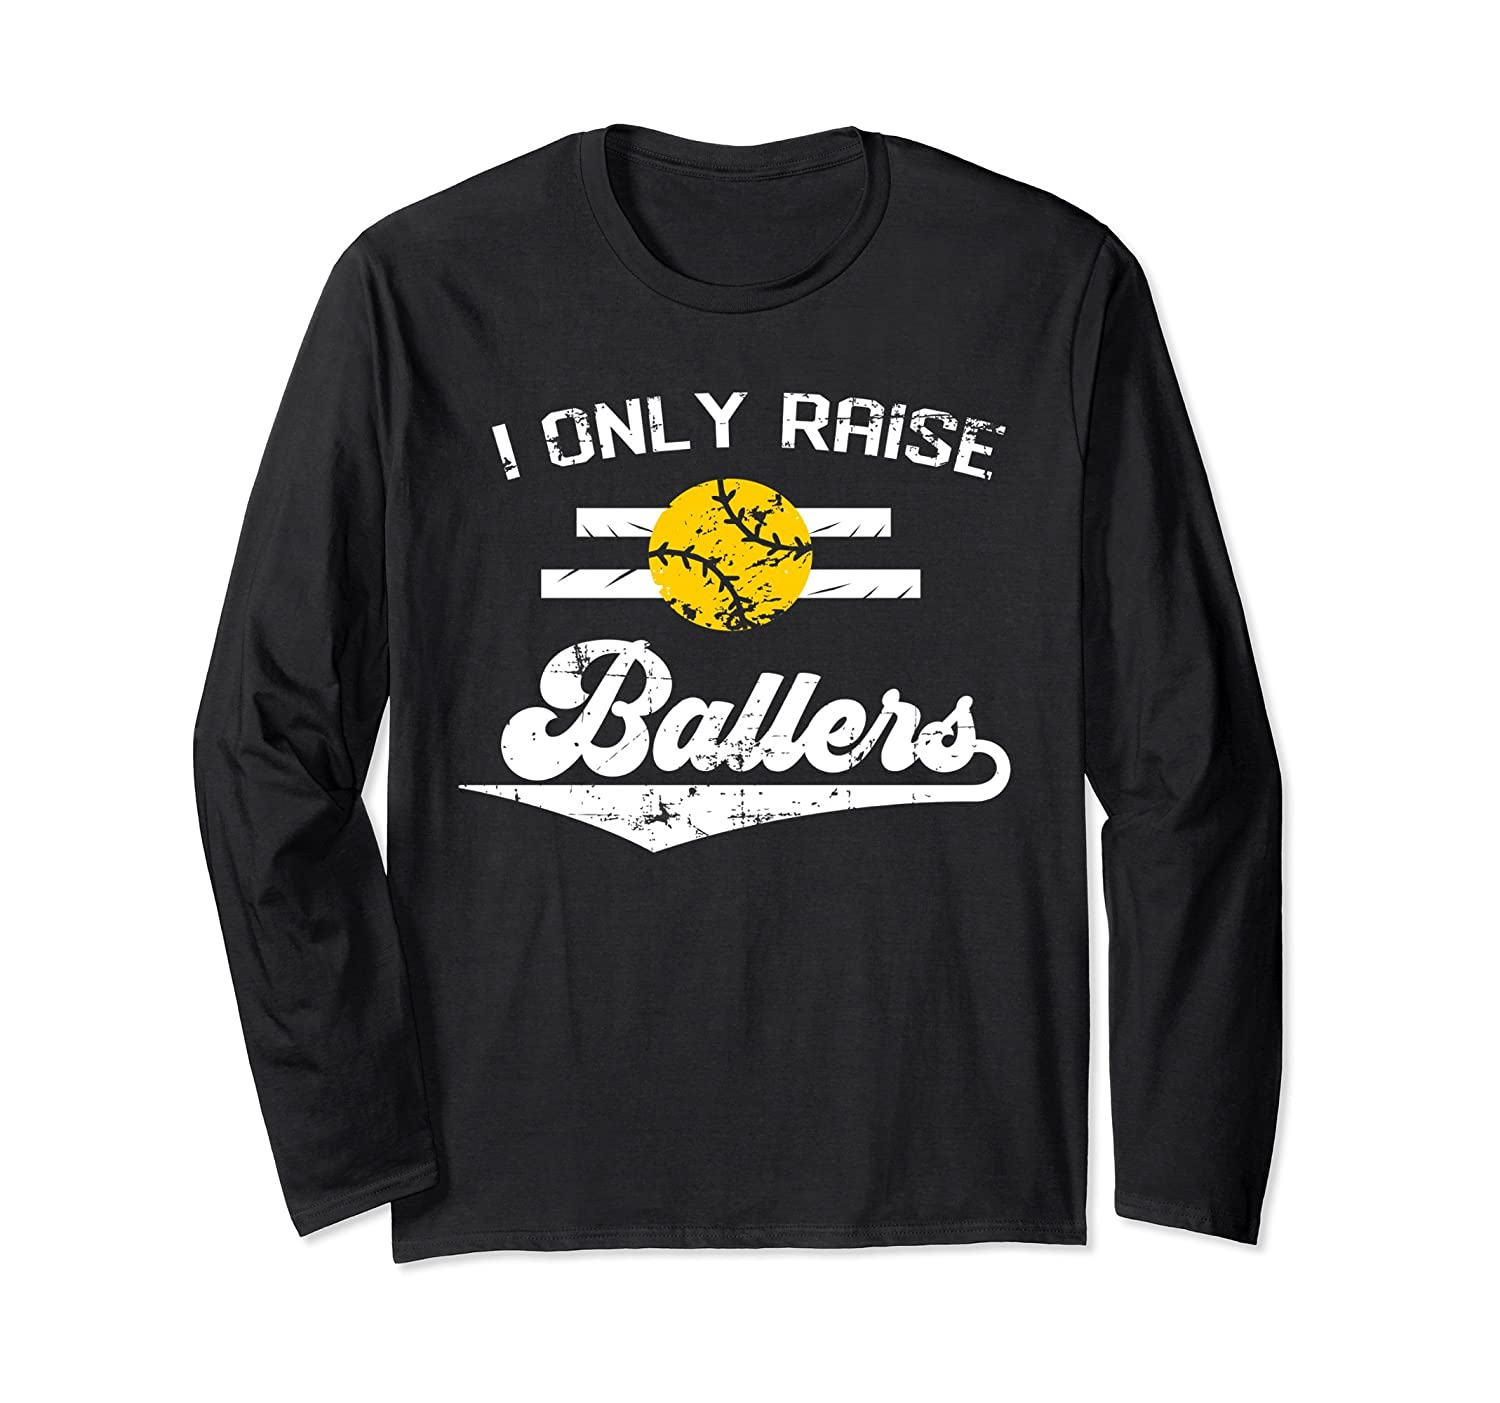 03d06c379 I Only Raise Ballers Shirt Long Sleeve Gift For Softball Dad-ah my shirt one